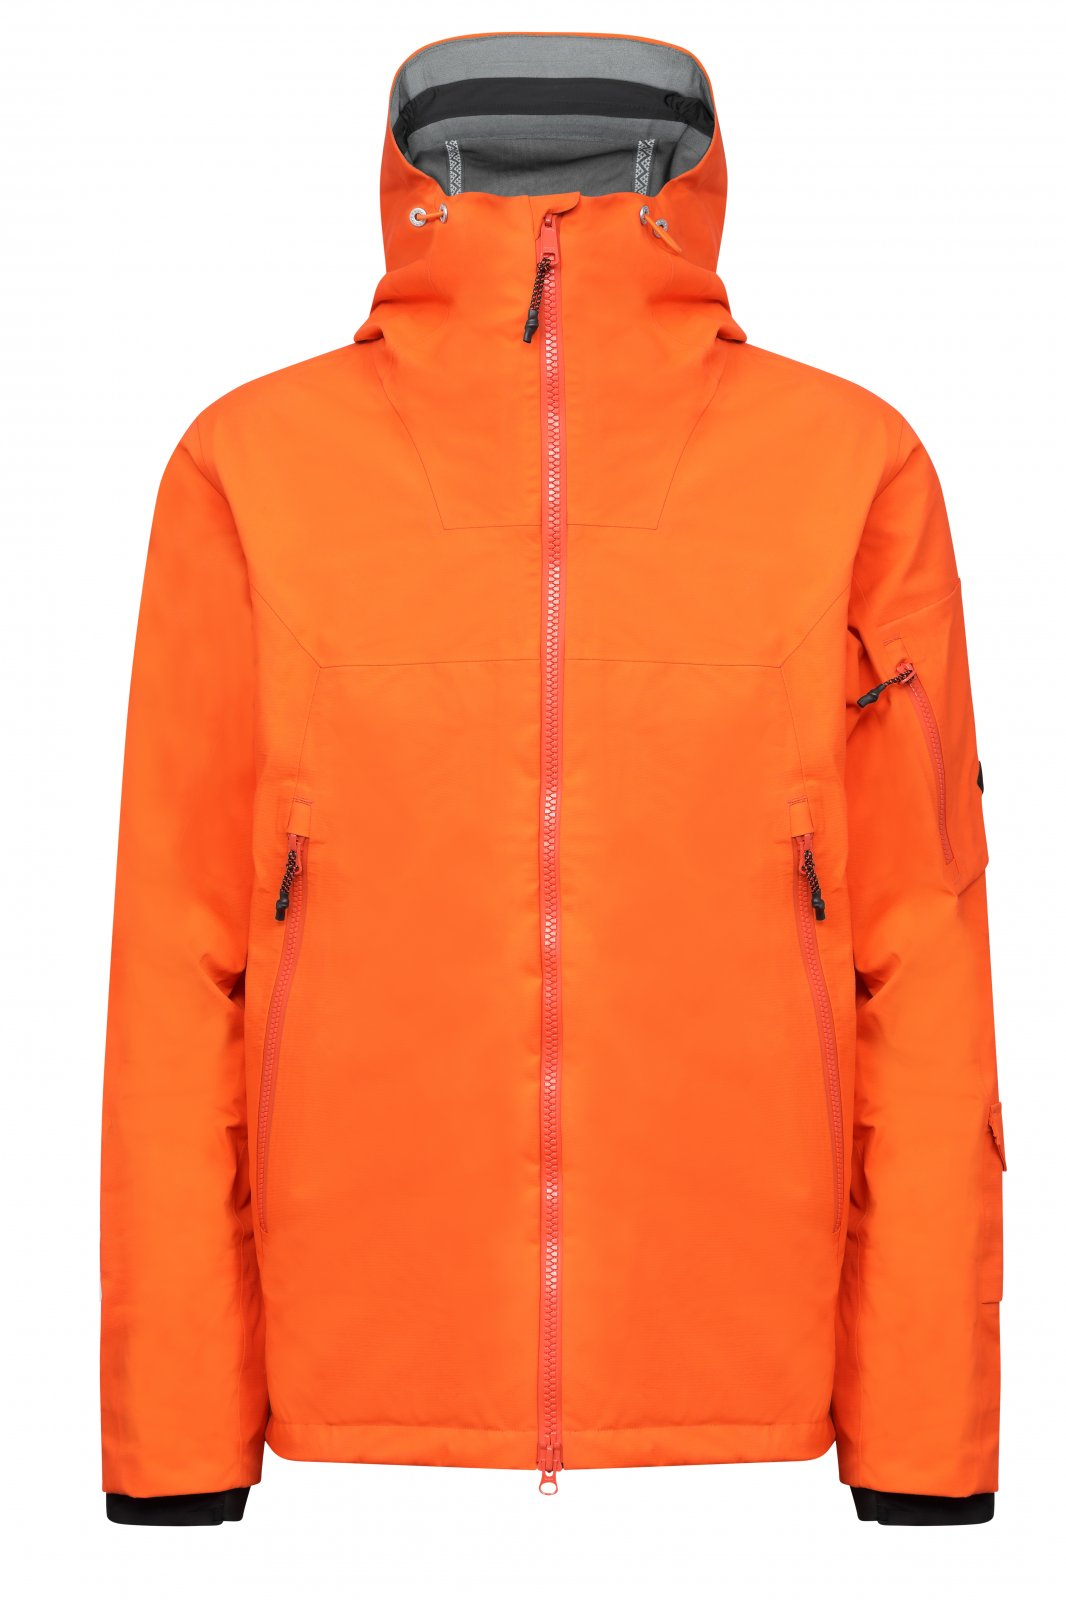 Black Crows M Ventus 3L Gore-Tex Jacket